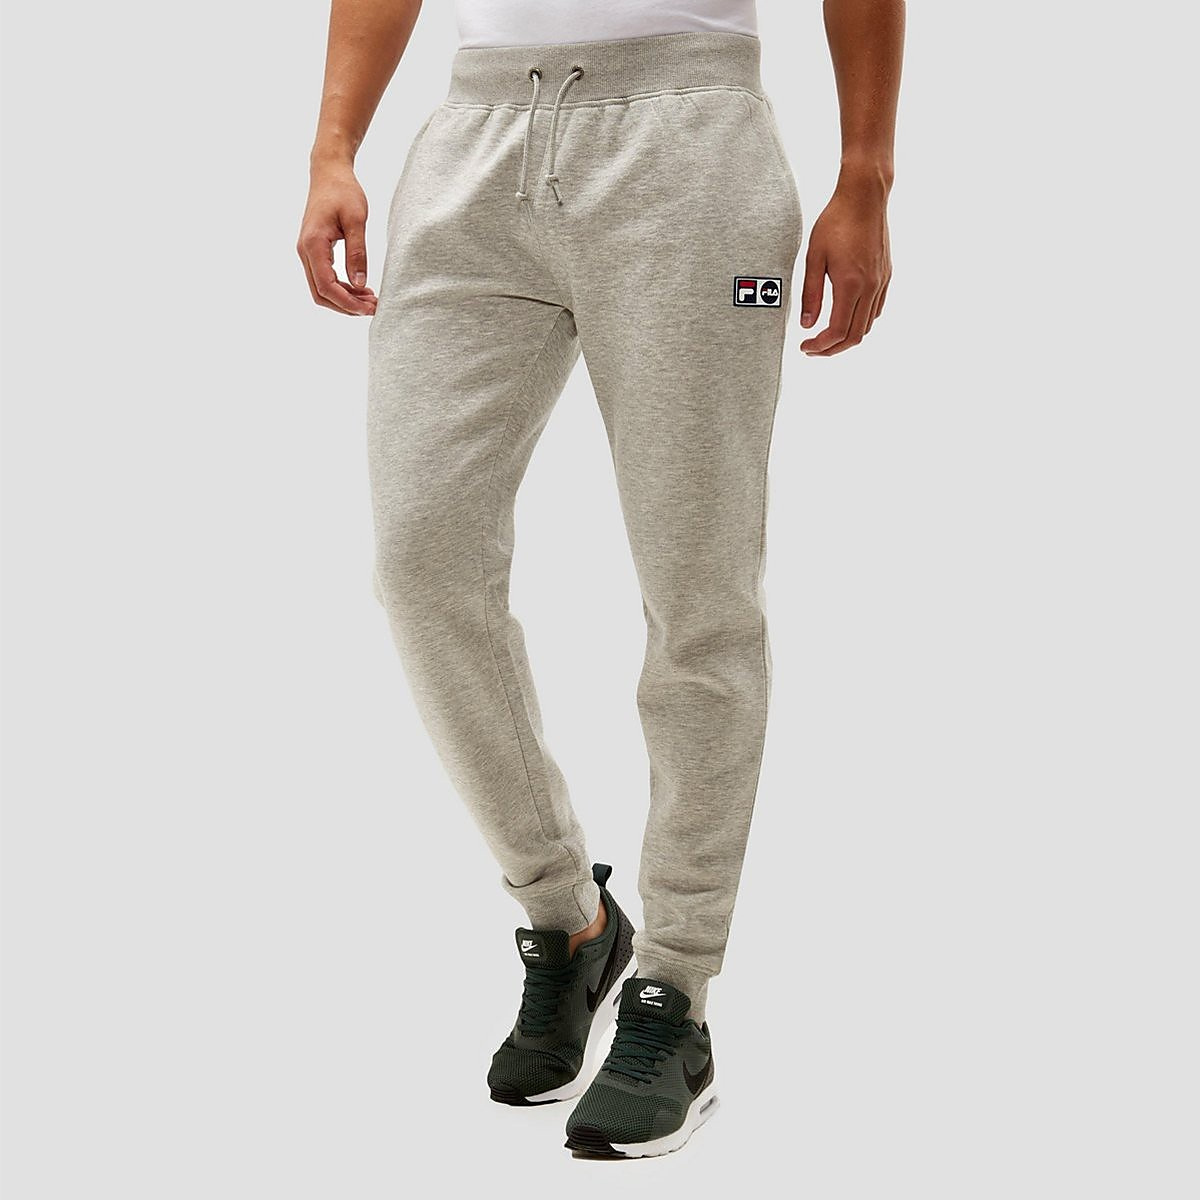 FILA BOLELLI JOGGINGBROEK HEREN